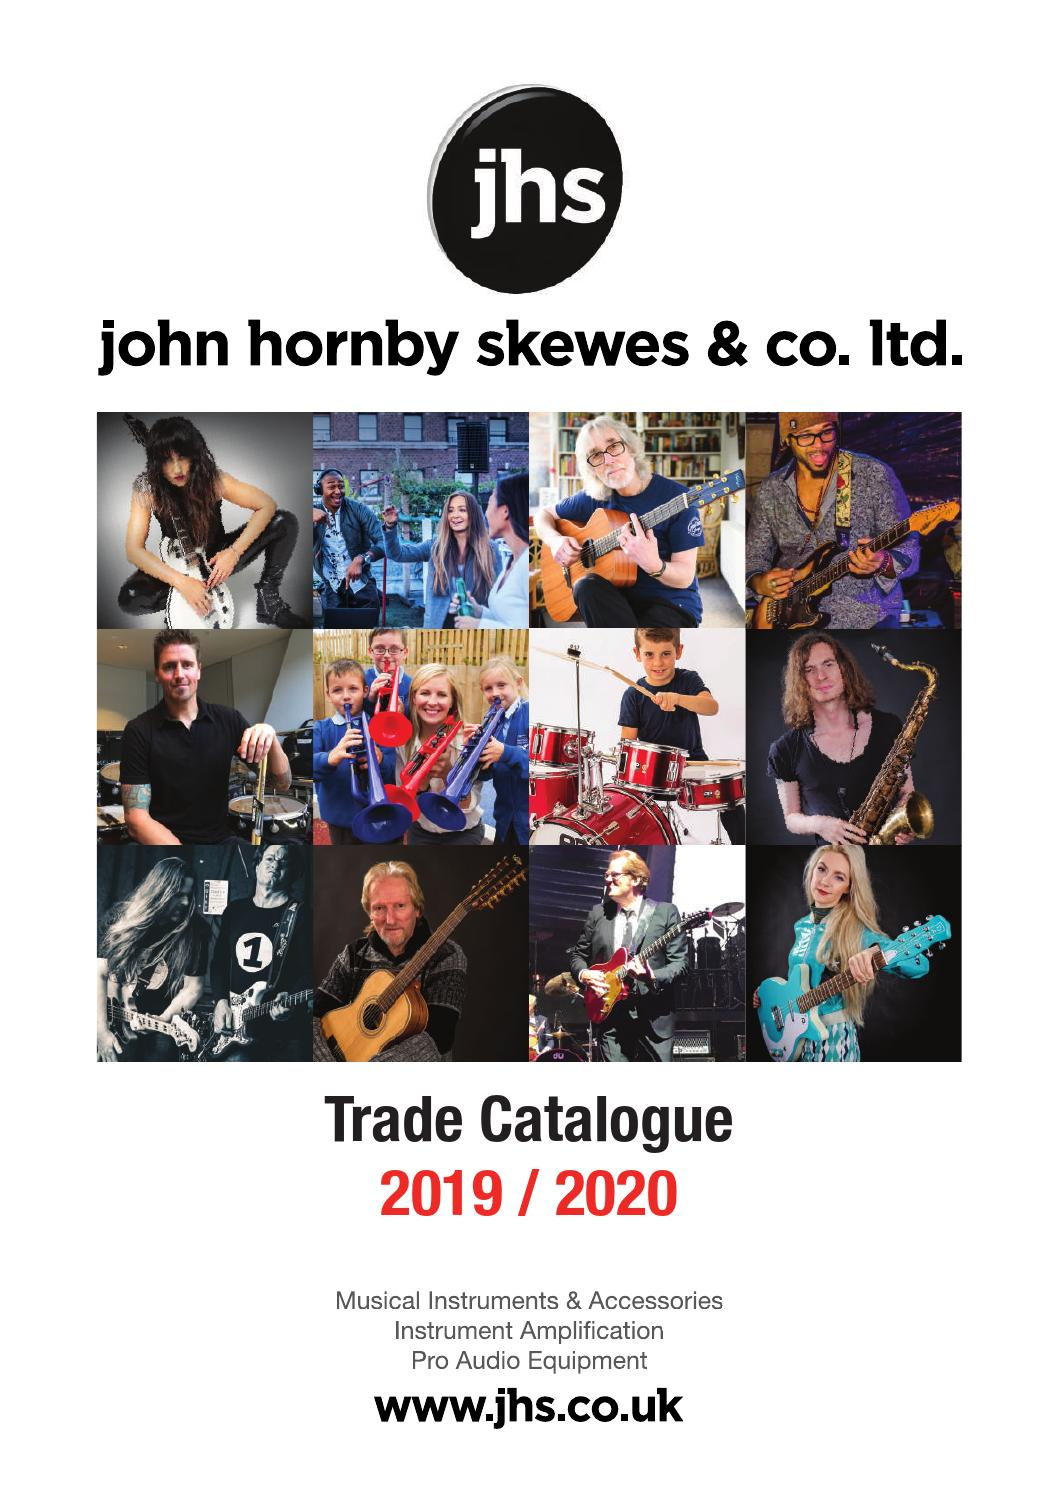 JHS Trade Catalogue 2019-2020 by John Hornby Skewes & Co